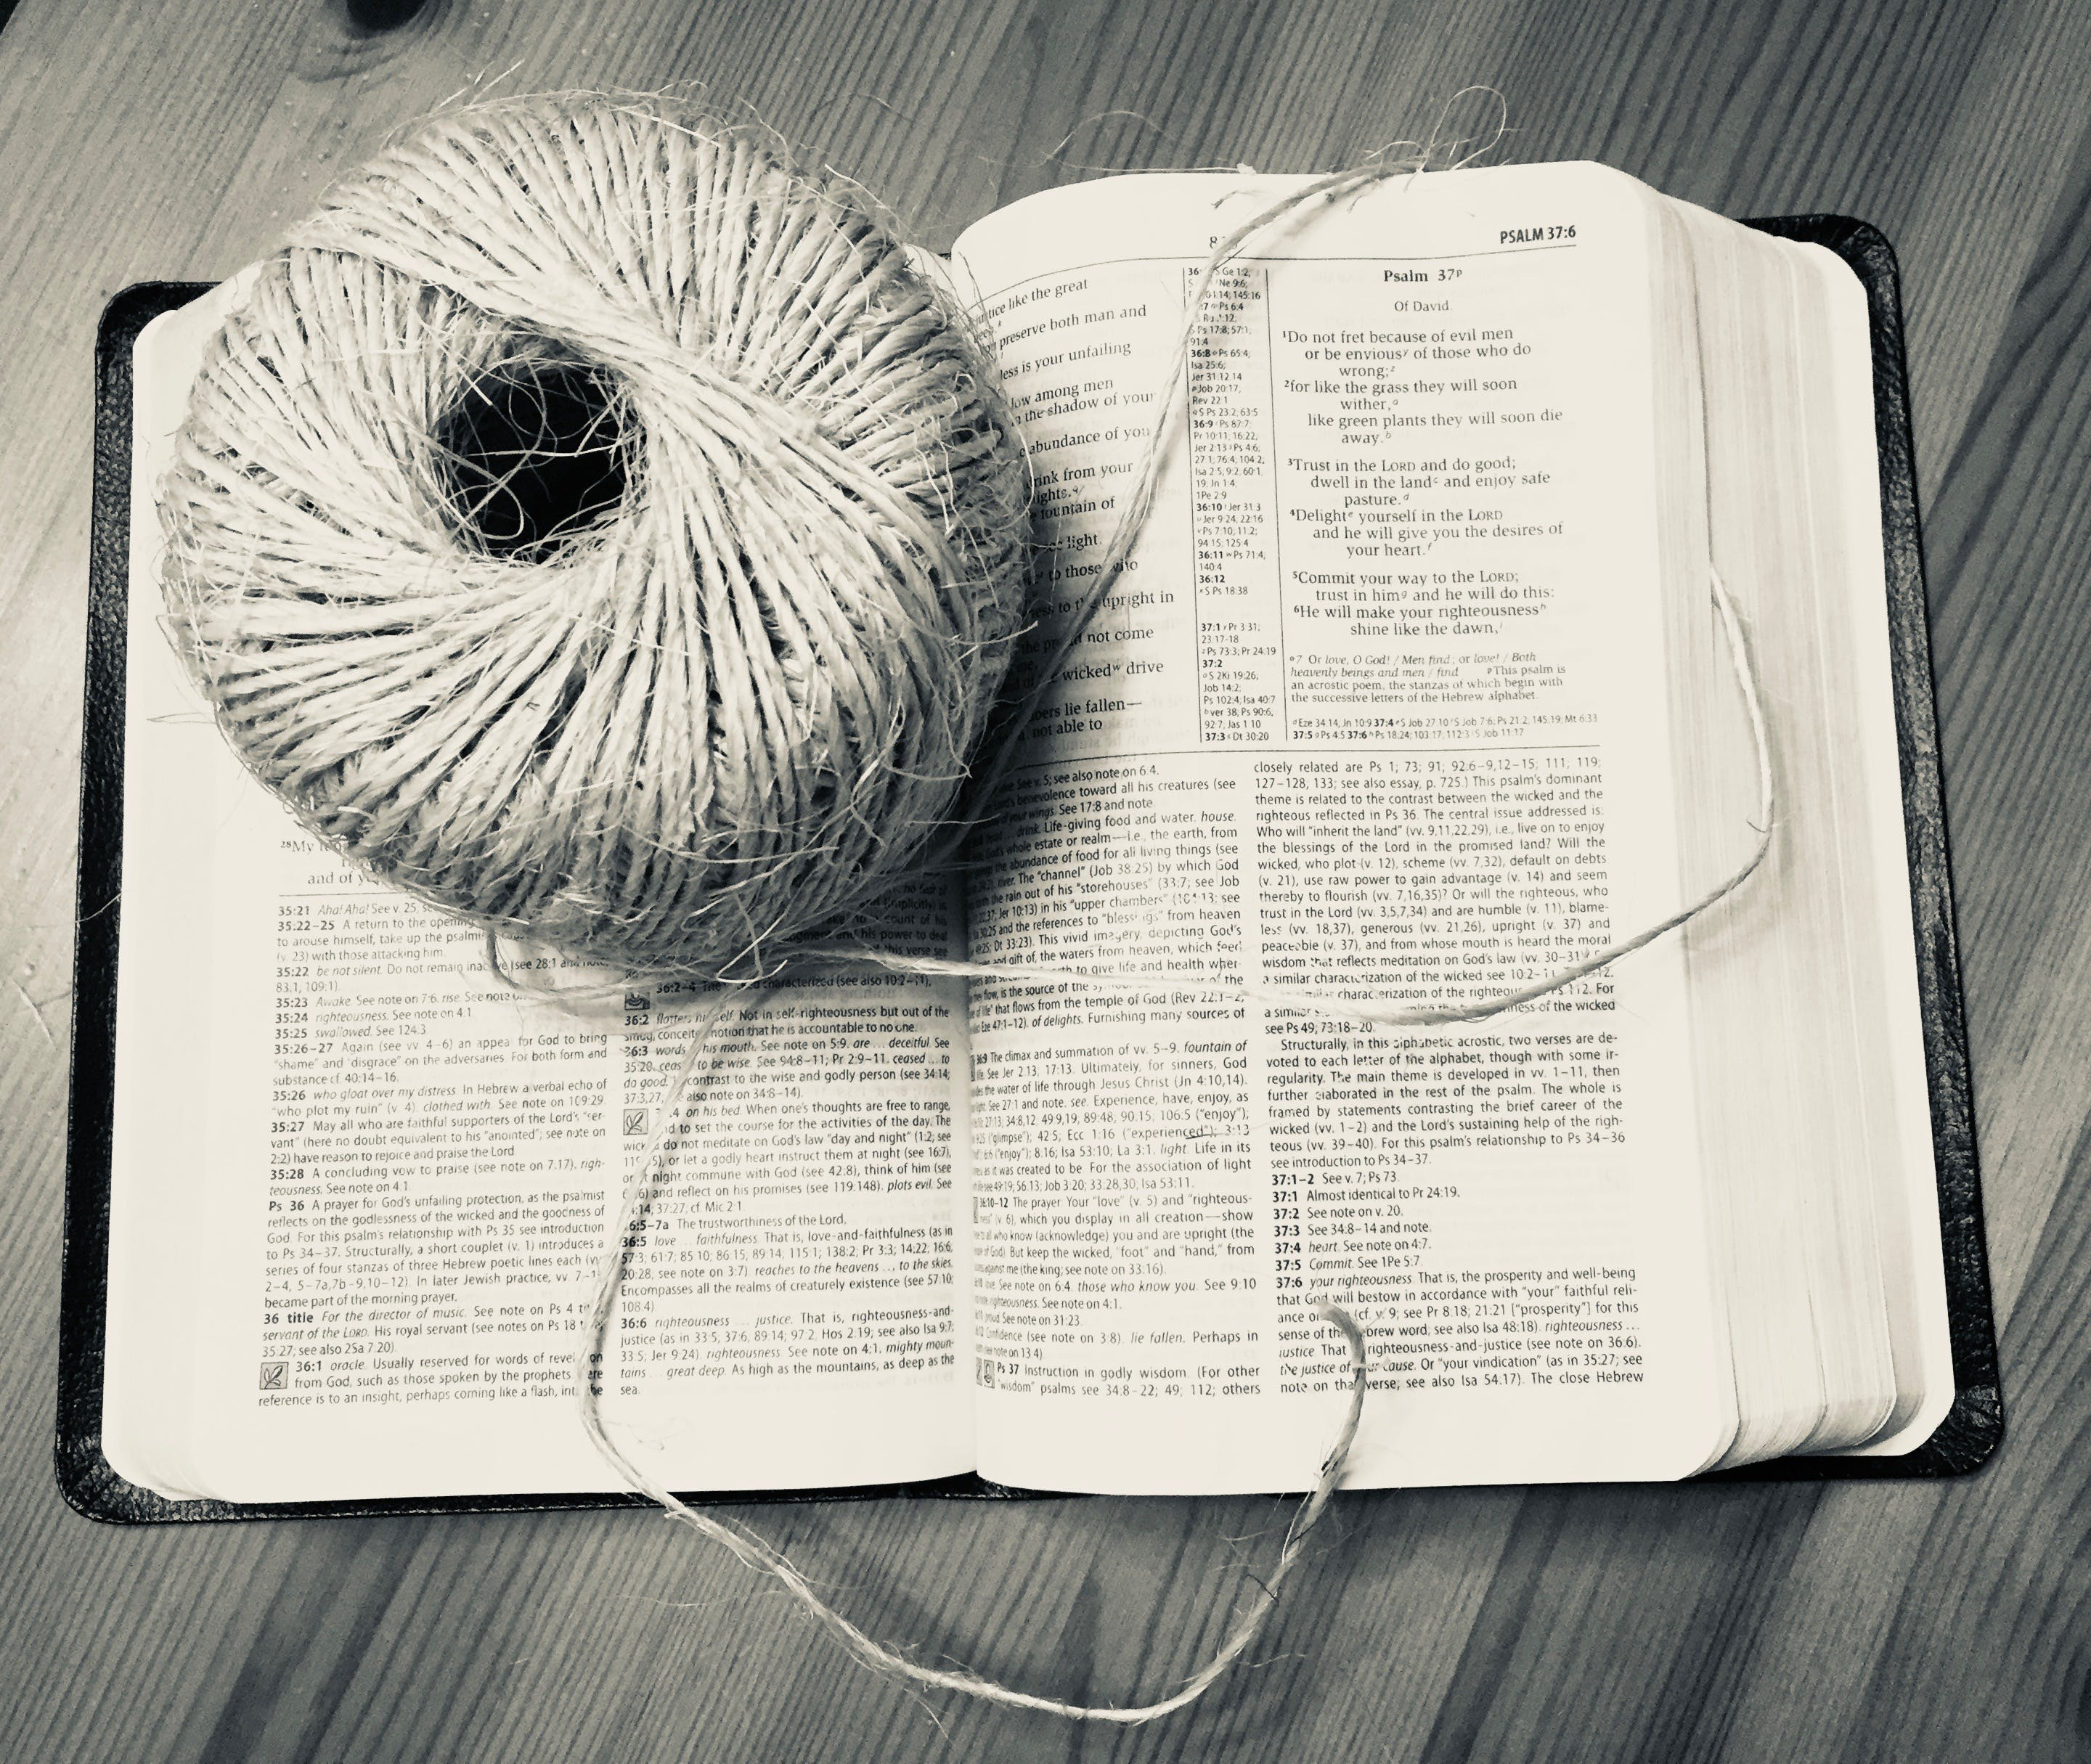 Free stock photo of bible, ball of twine and Bible, long string, ball of twine